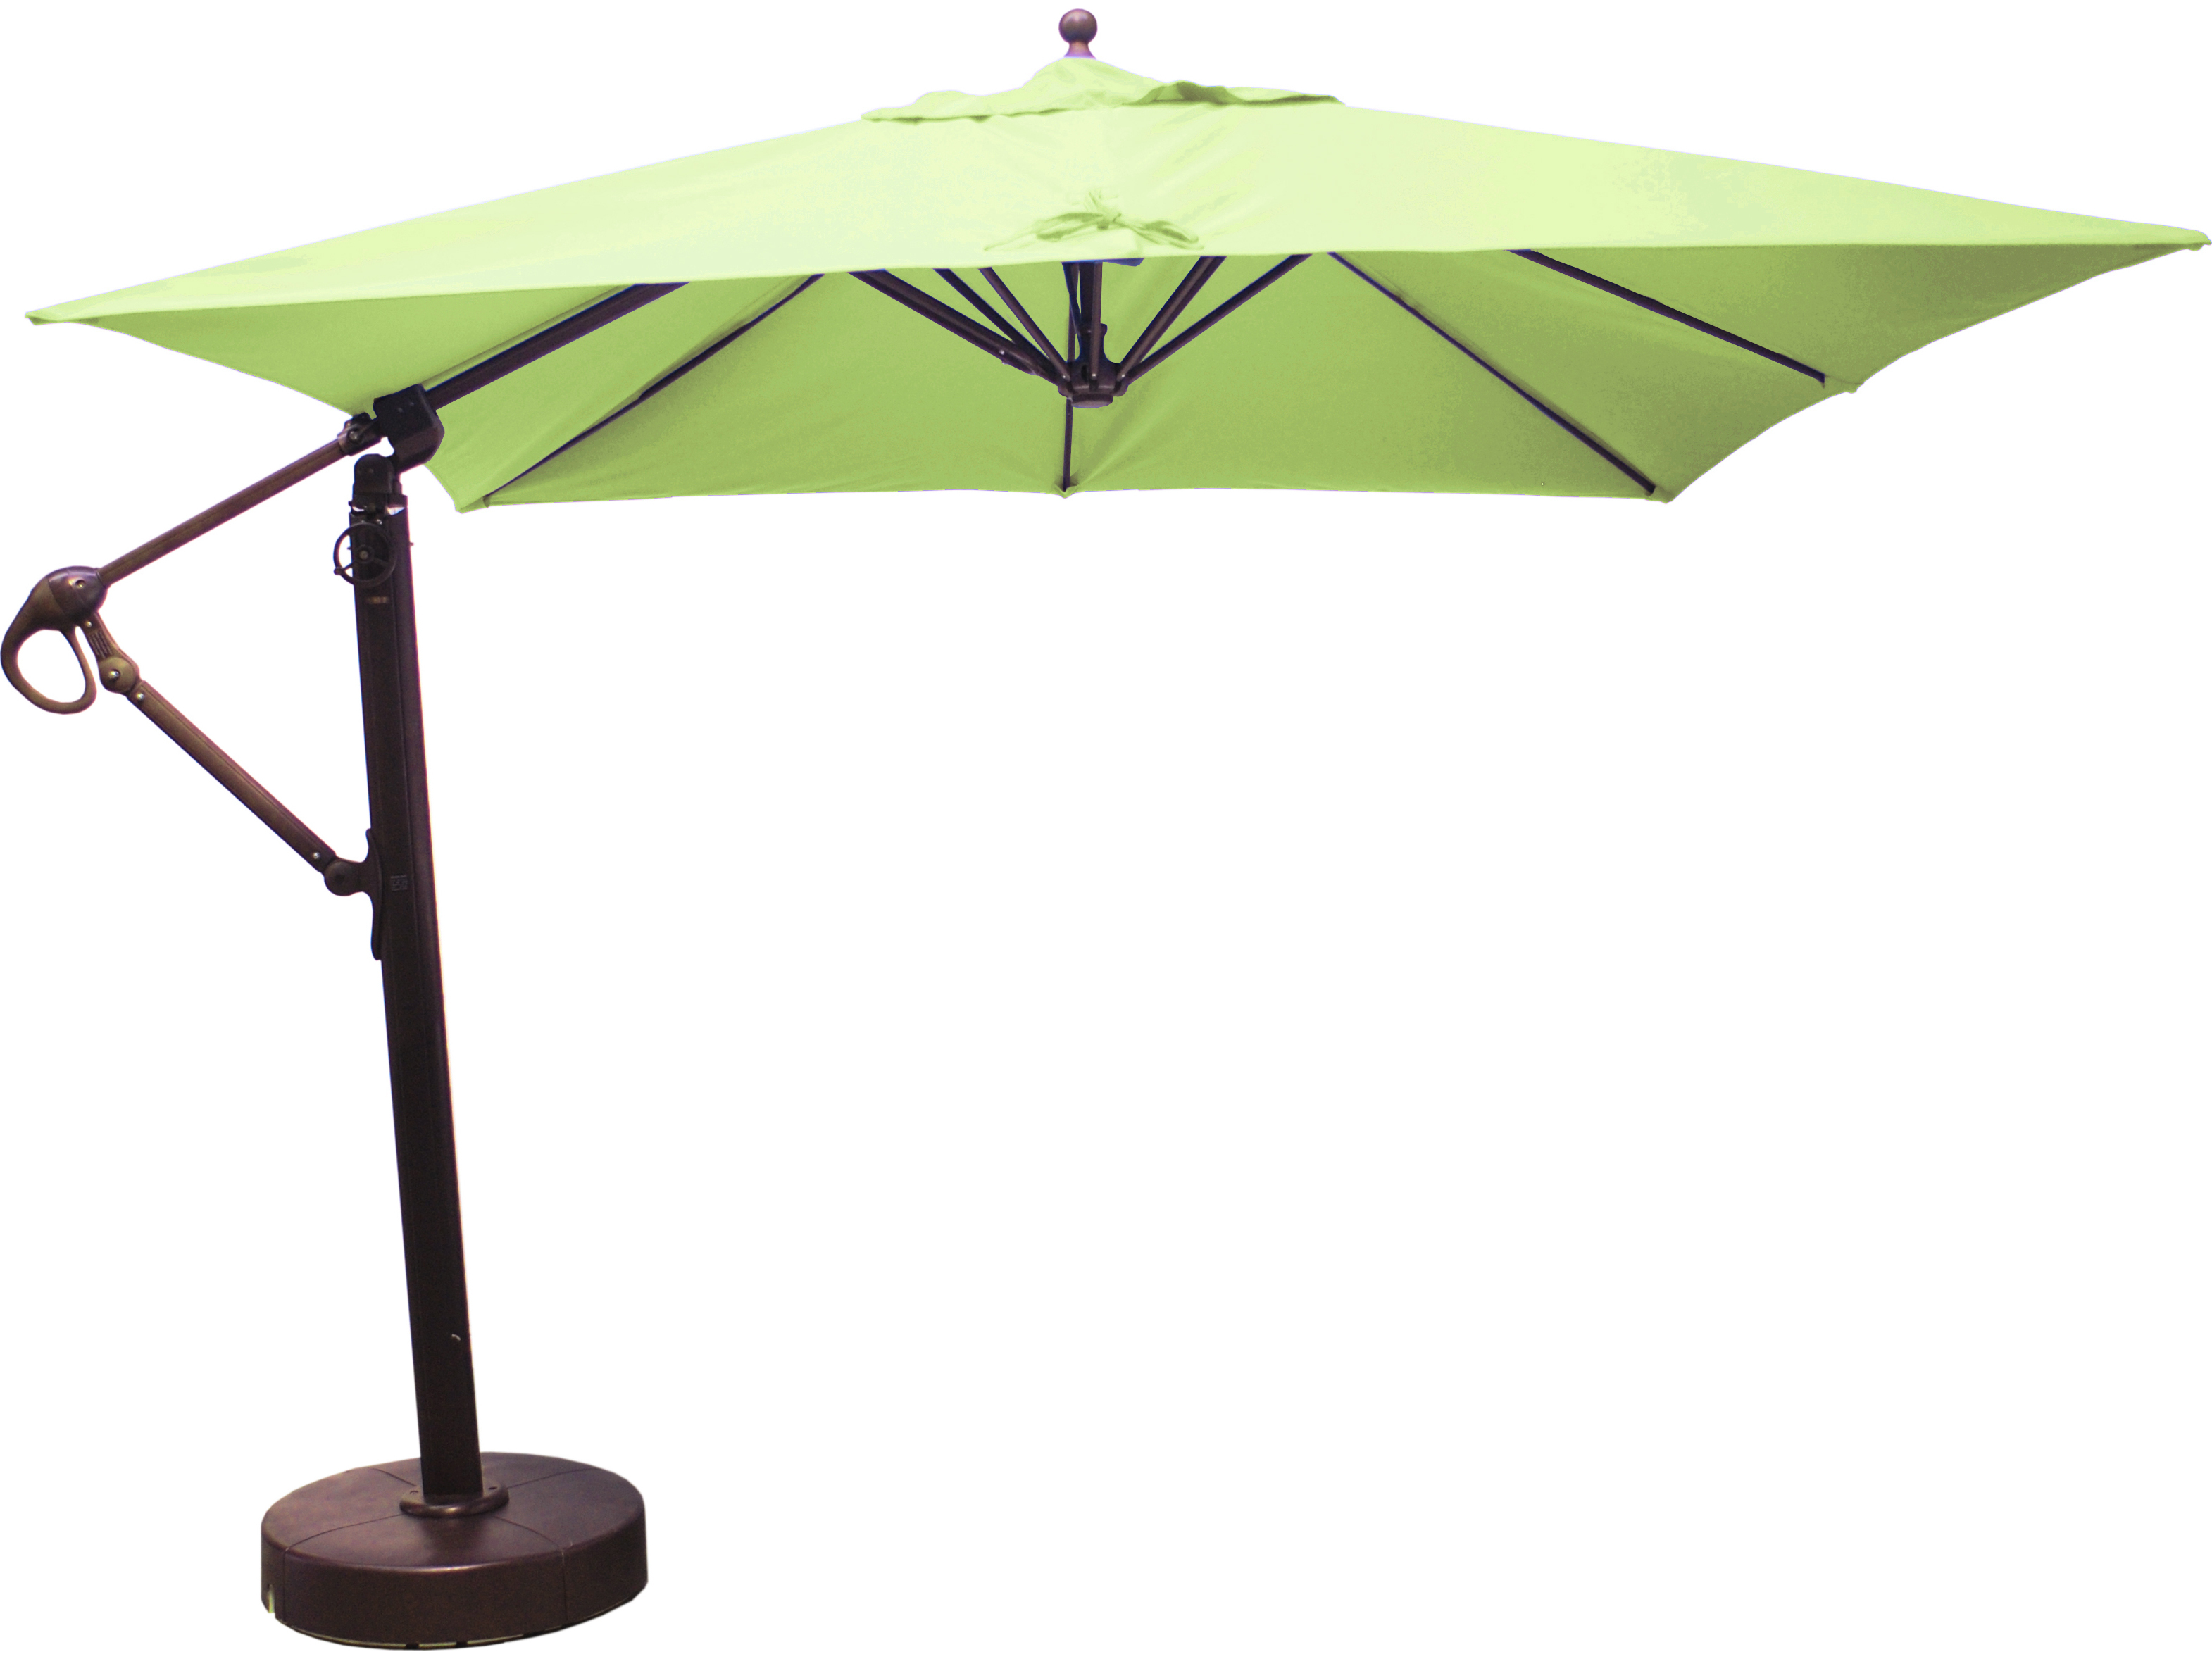 Costco Offset Umbrella | Costco Outdoor Furniture | Patio Table Umbrellas